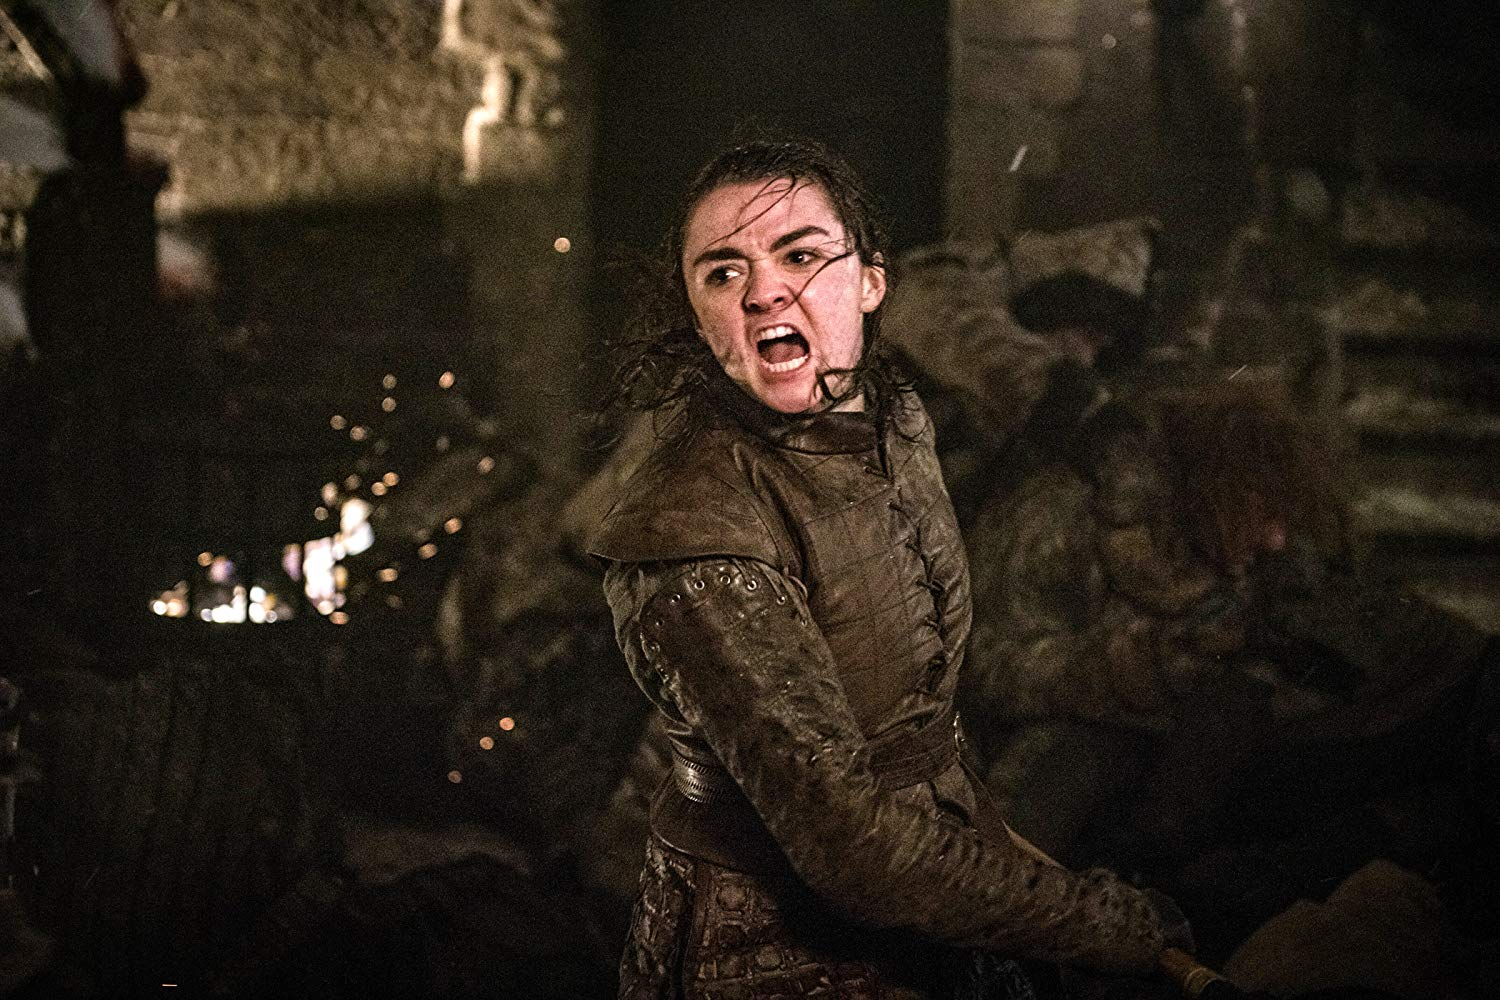 Game of Thrones: Batalla de Winterfell, el episodio más visto de temporada final de la serie de HBO